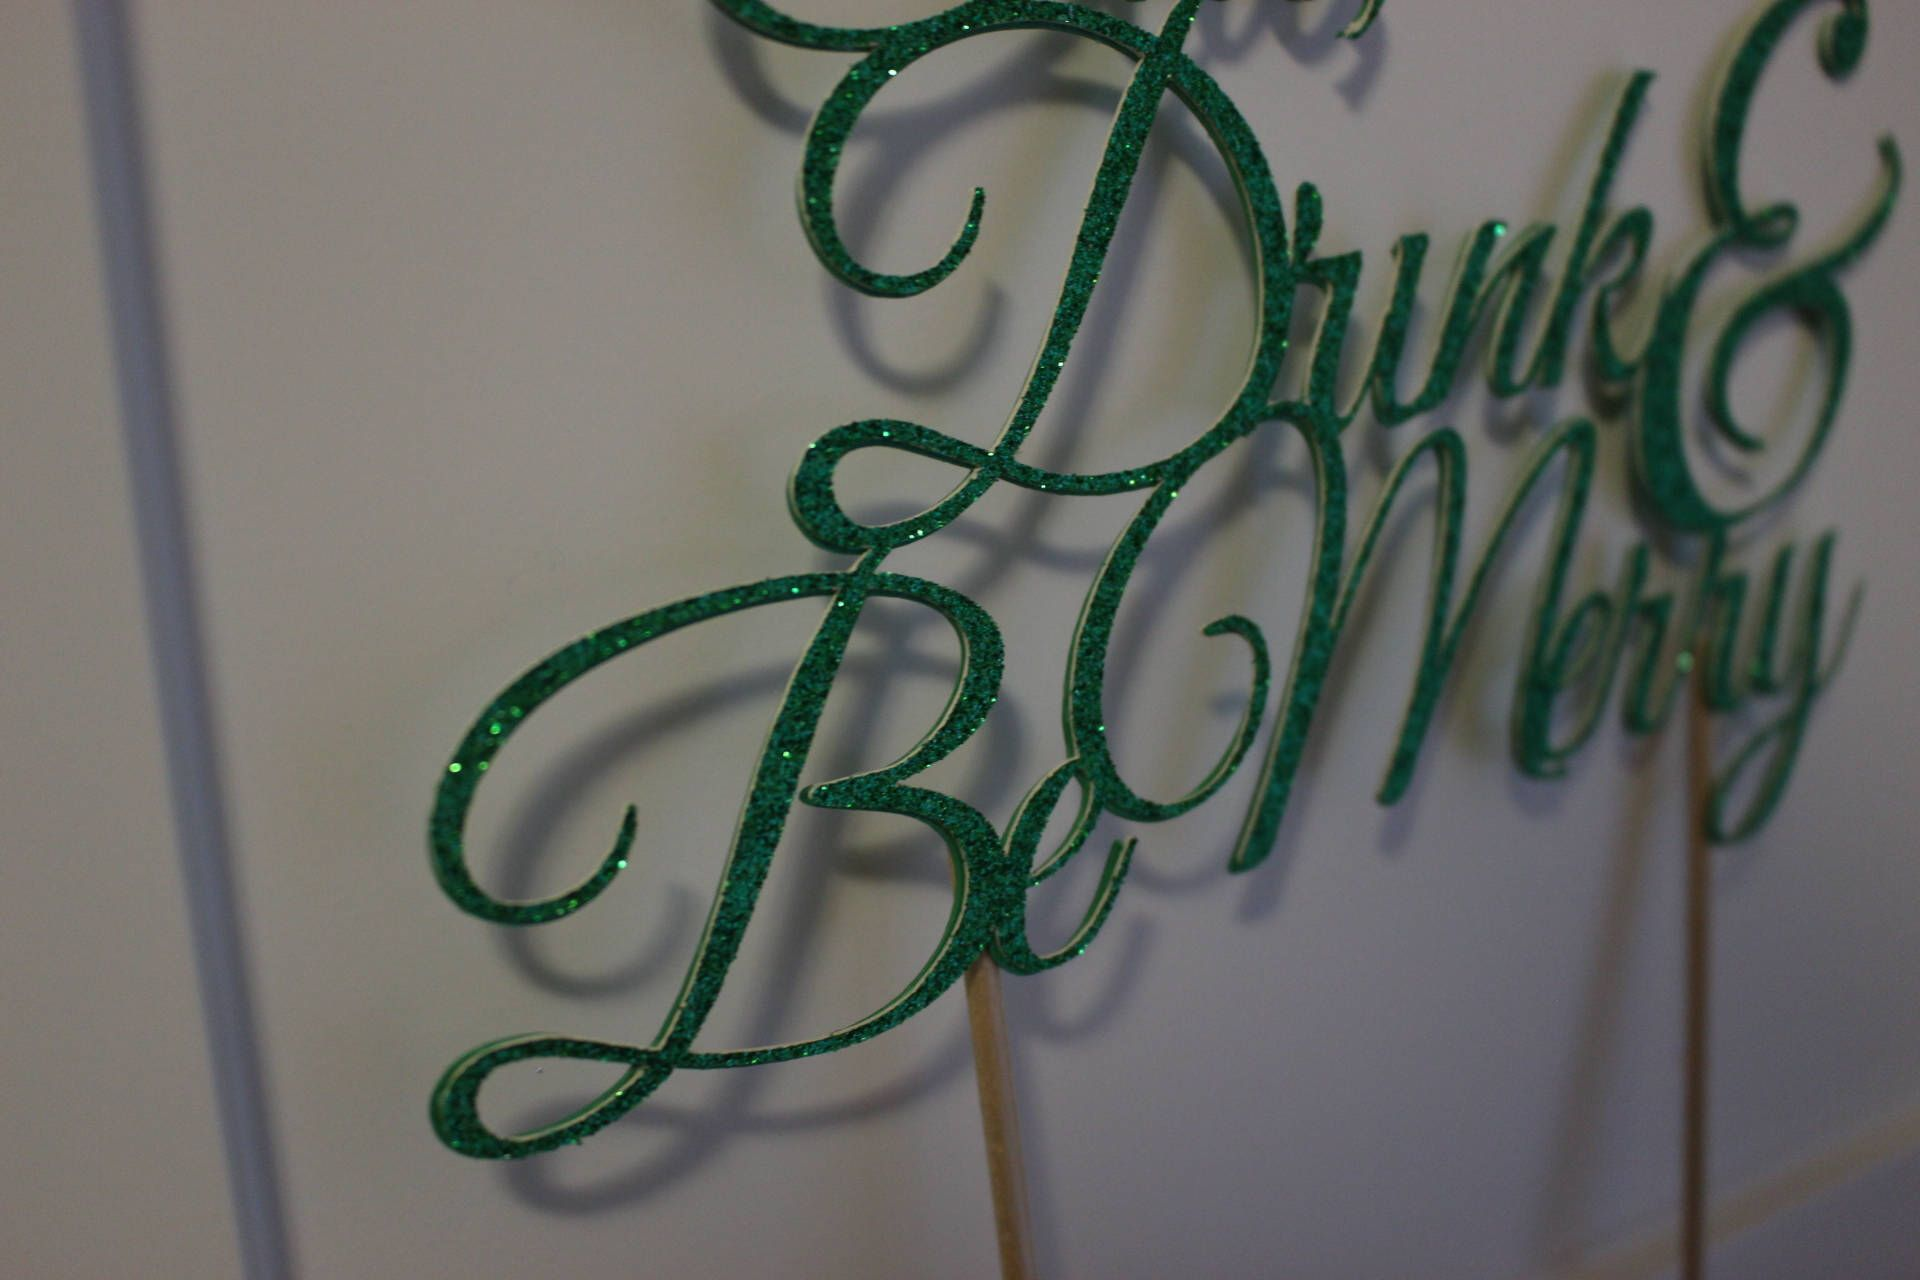 Eat Drink and Be Merry Cake Topper, Christmas Cake Topper,Christmas Party Decor by OneofaKindDesignAA on Etsy https://www.etsy.com/ca/listing/555132228/eat-drink-and-be-merry-cake-topper